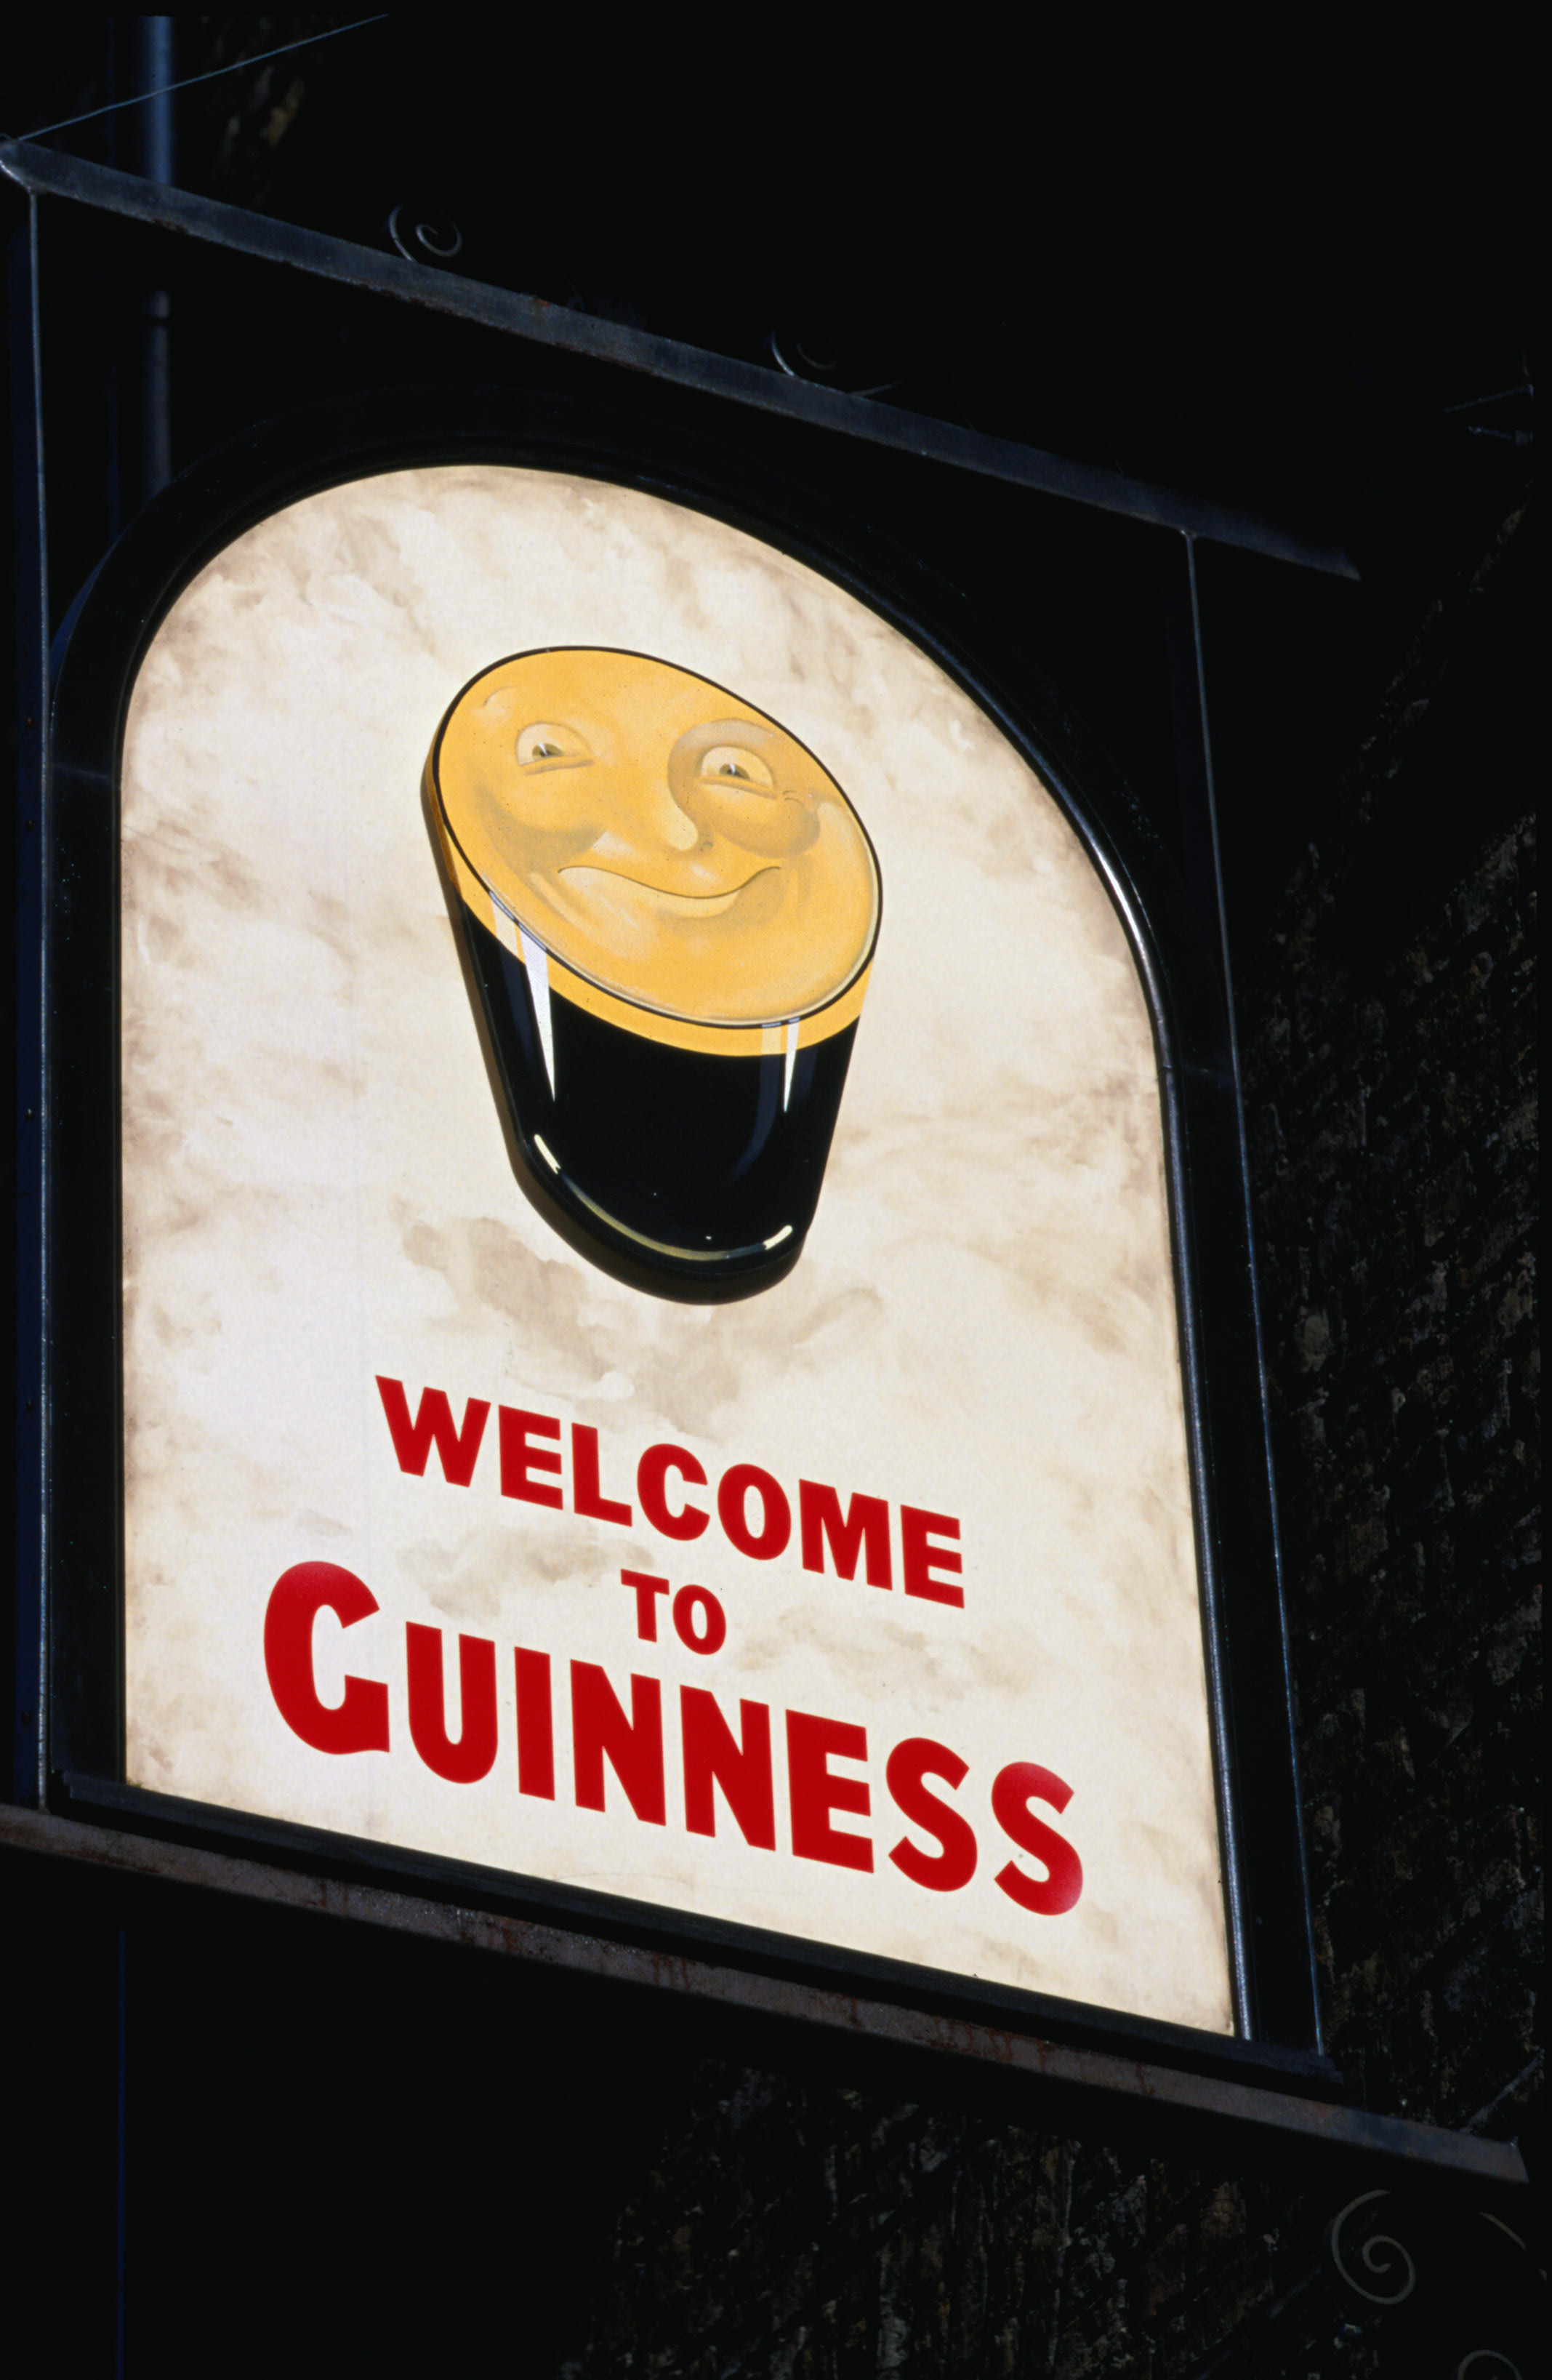 Arthur Guinness signed a 9,000 year lease.